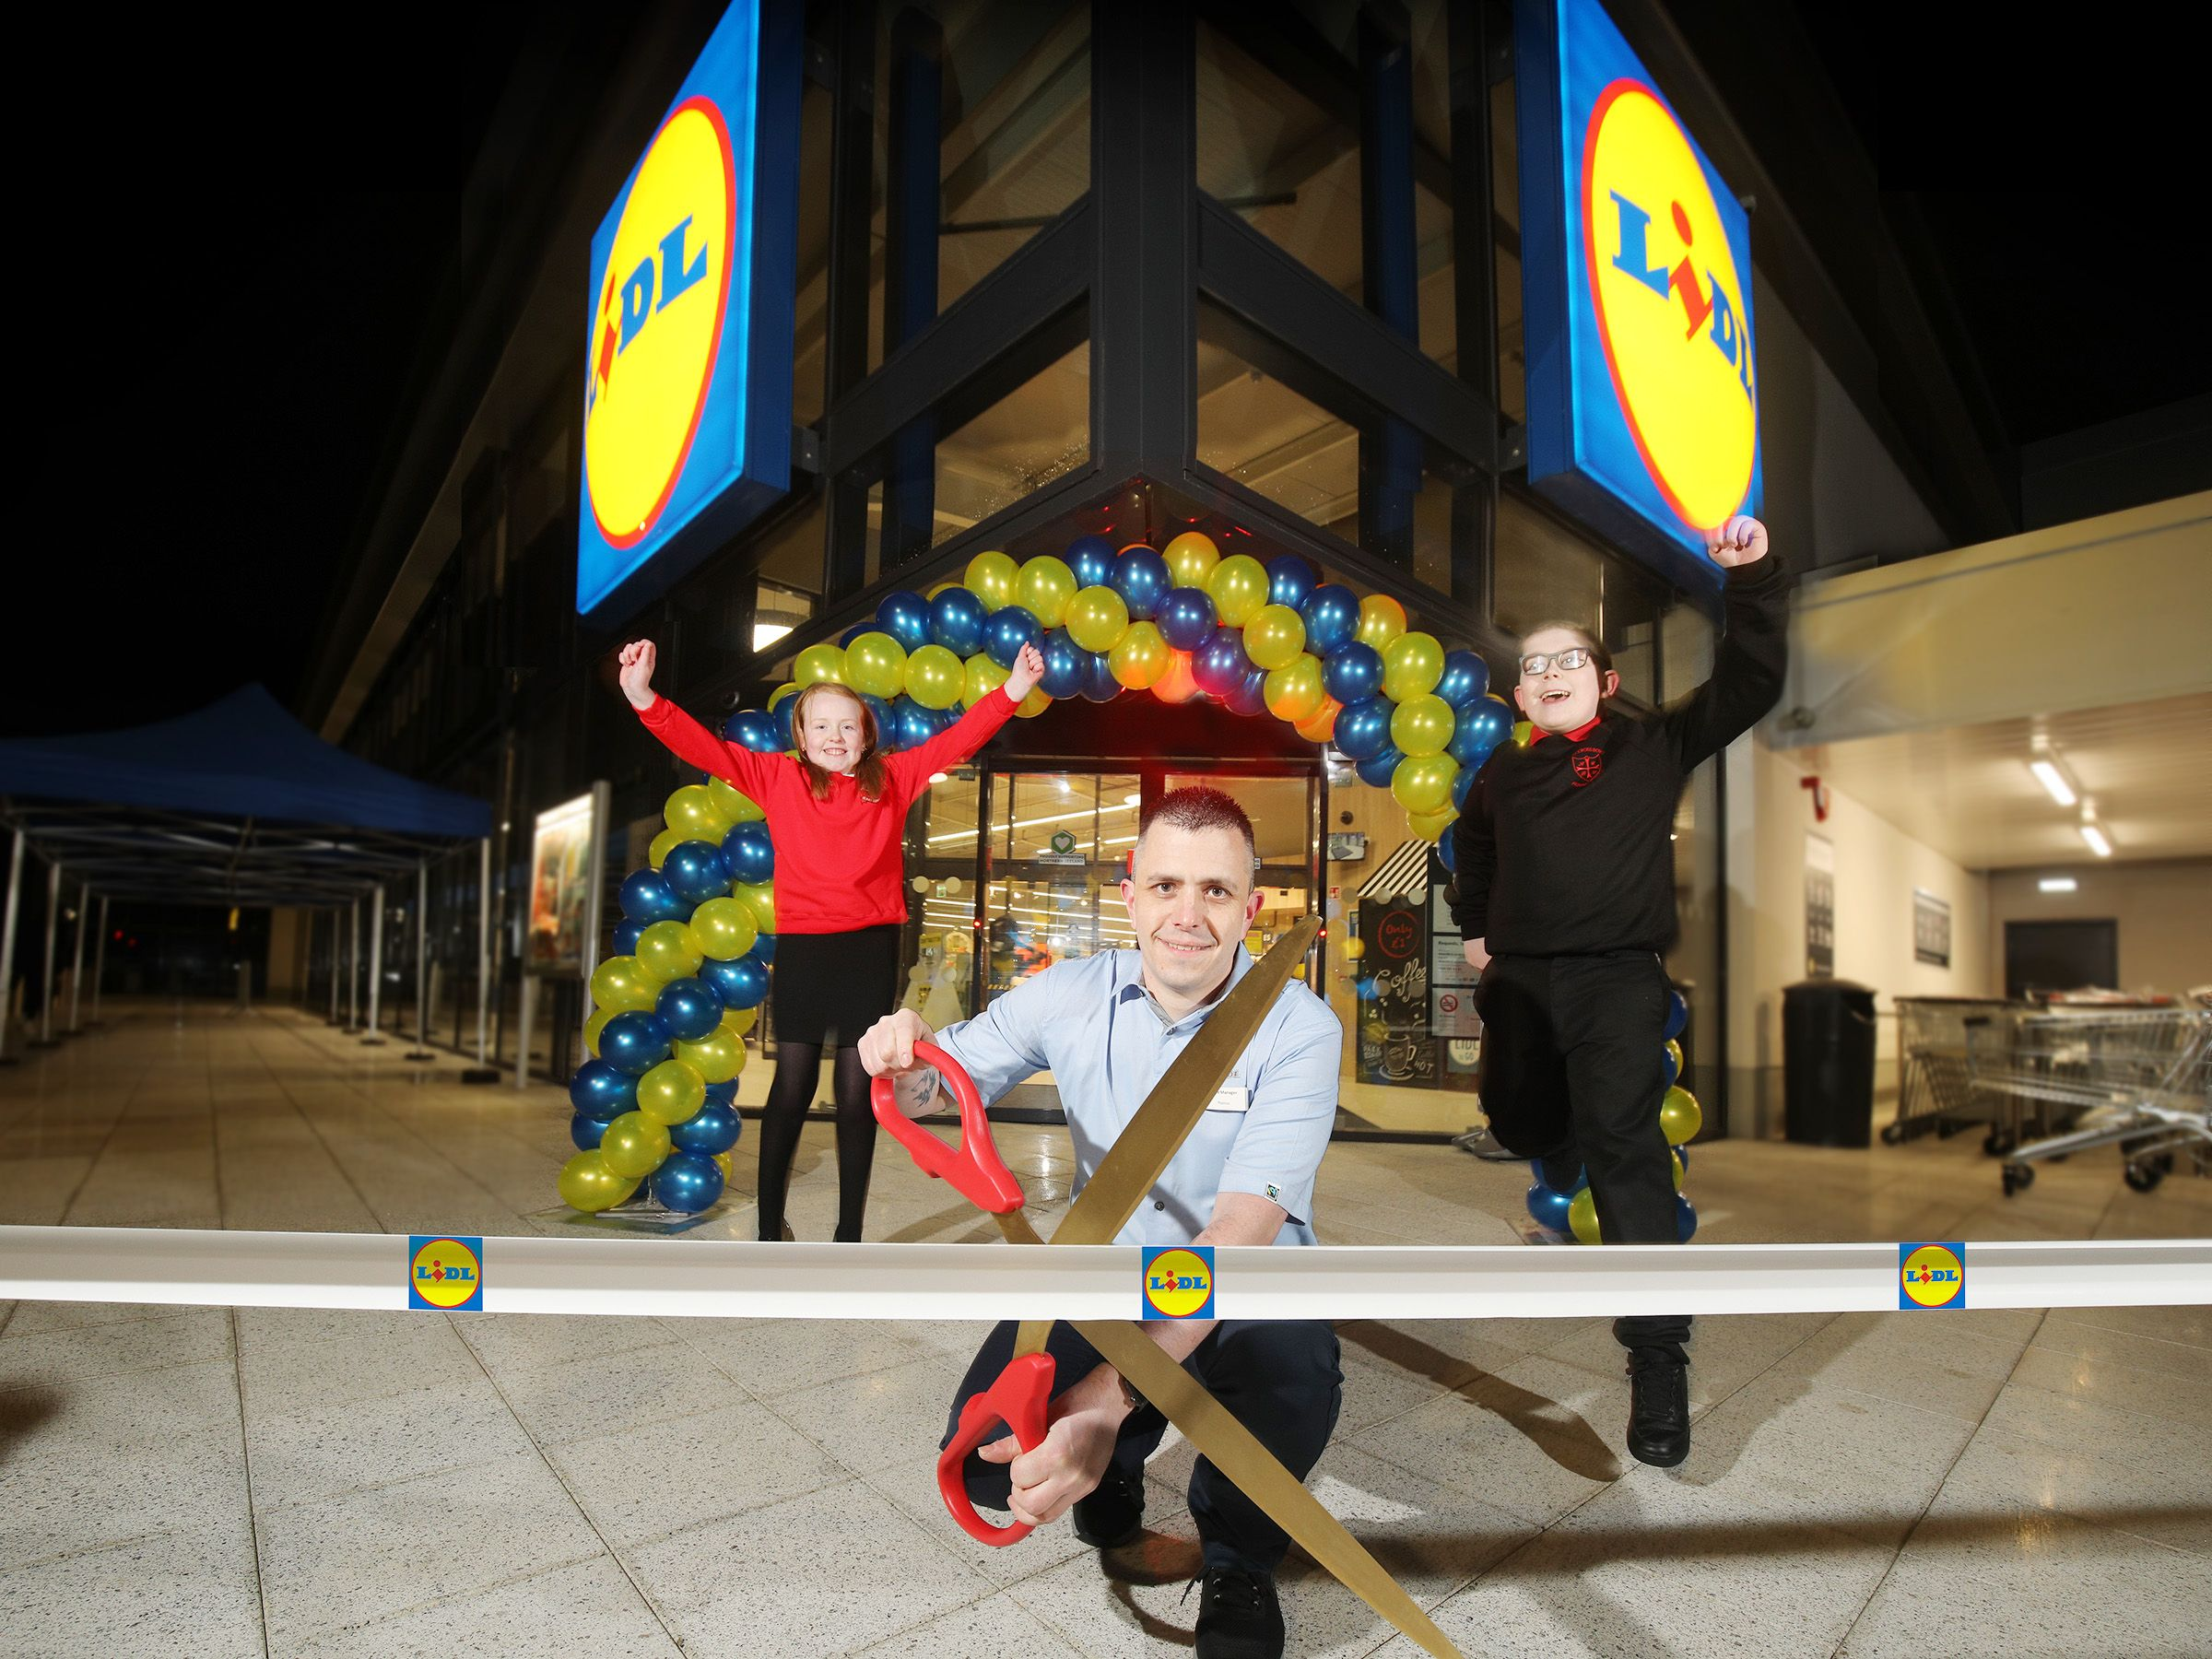 OFFICIAL OPENING: Lily Irvine (Edenbrooke Primary School), Thomas McFarlane (Lidl Northern Ireland Hillview Retail Park Store Manager) and Pearse Osborne (Holy Cross Boys Primary) at the new Lidl store on the Crumlin Road